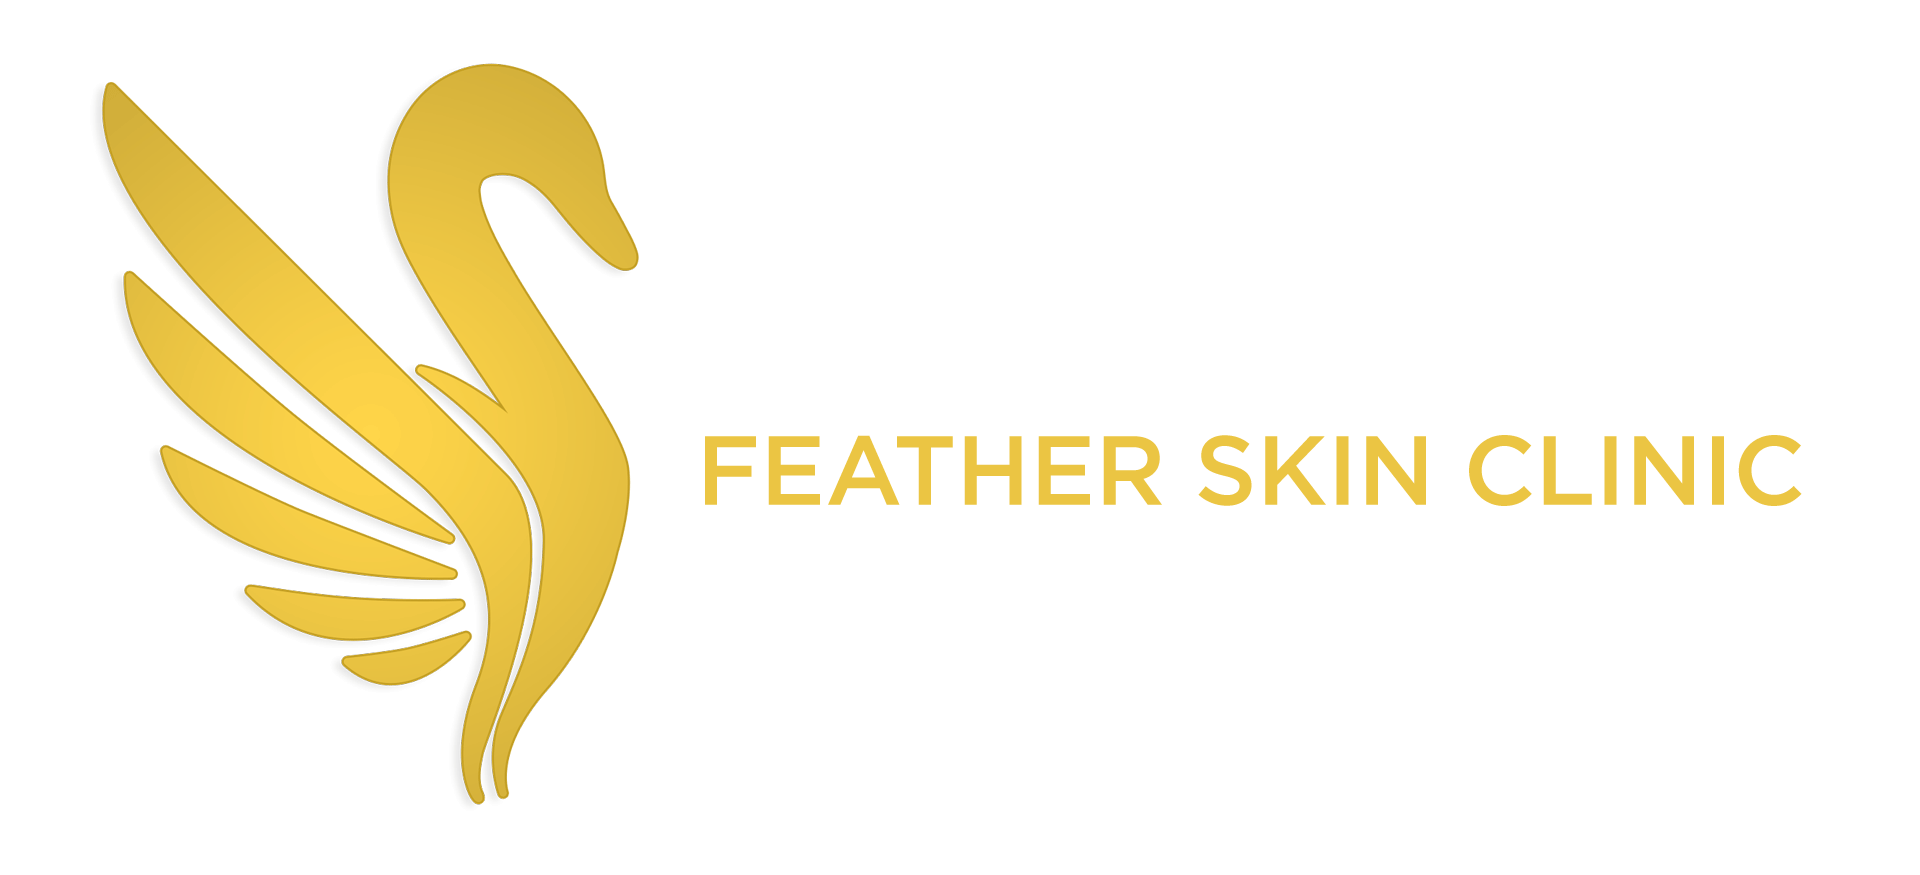 Feather Skin Clinic Mobile Logo